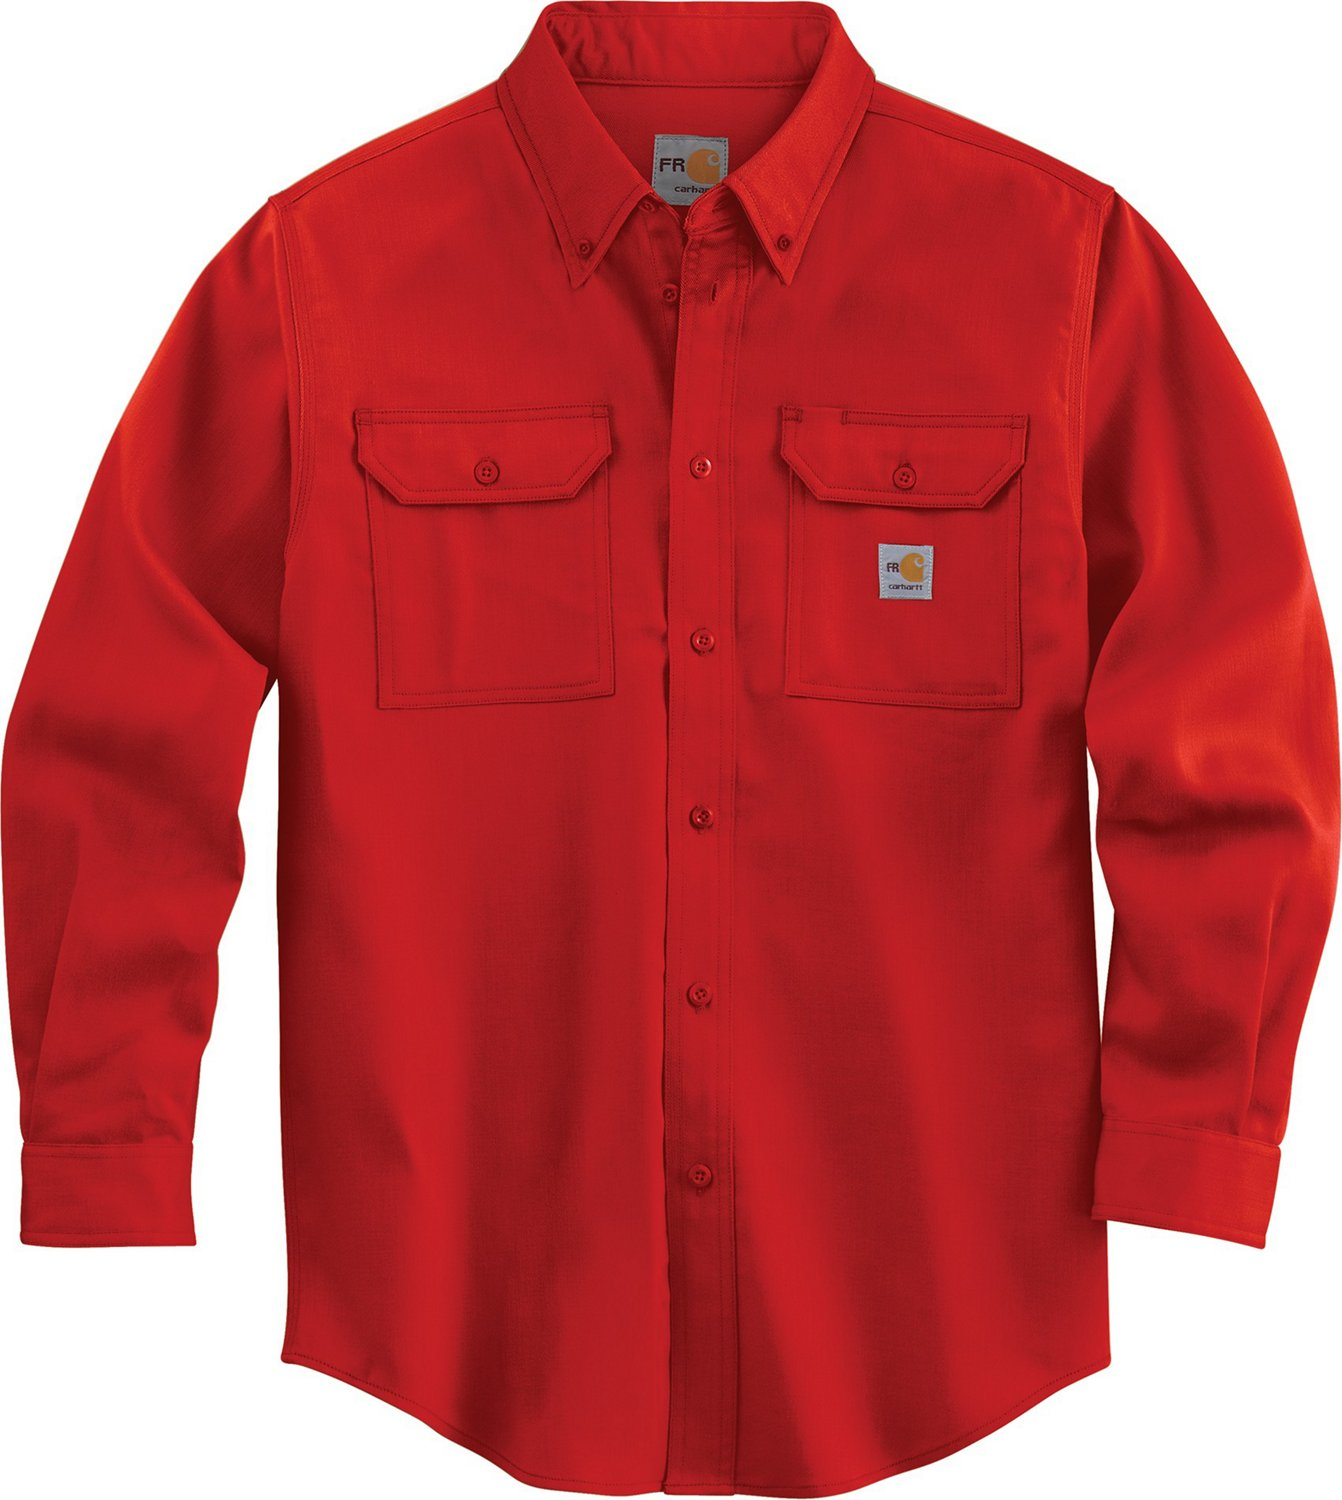 6248f1e8dd Display product reviews for Carhartt Men's Flame-Resistant Work-Dry  Lightweight Twill Shirt